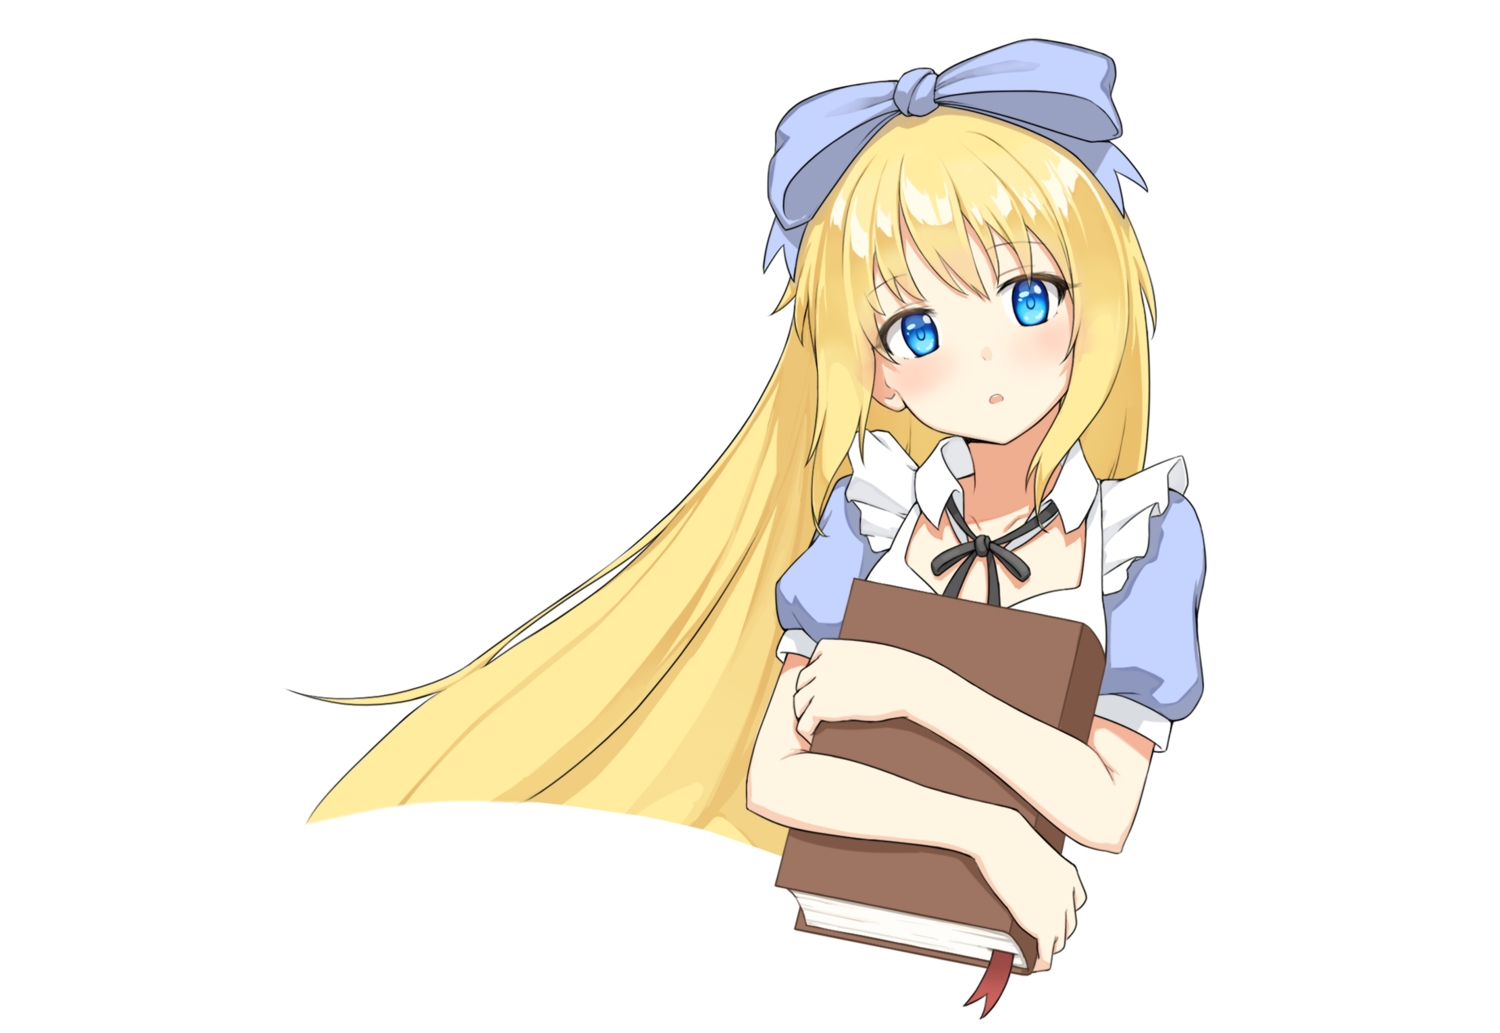 alice_in_wonderland alice_(wonderland) aqua_eyes blonde_hair book bow headband long_hair original ribbonsnek white